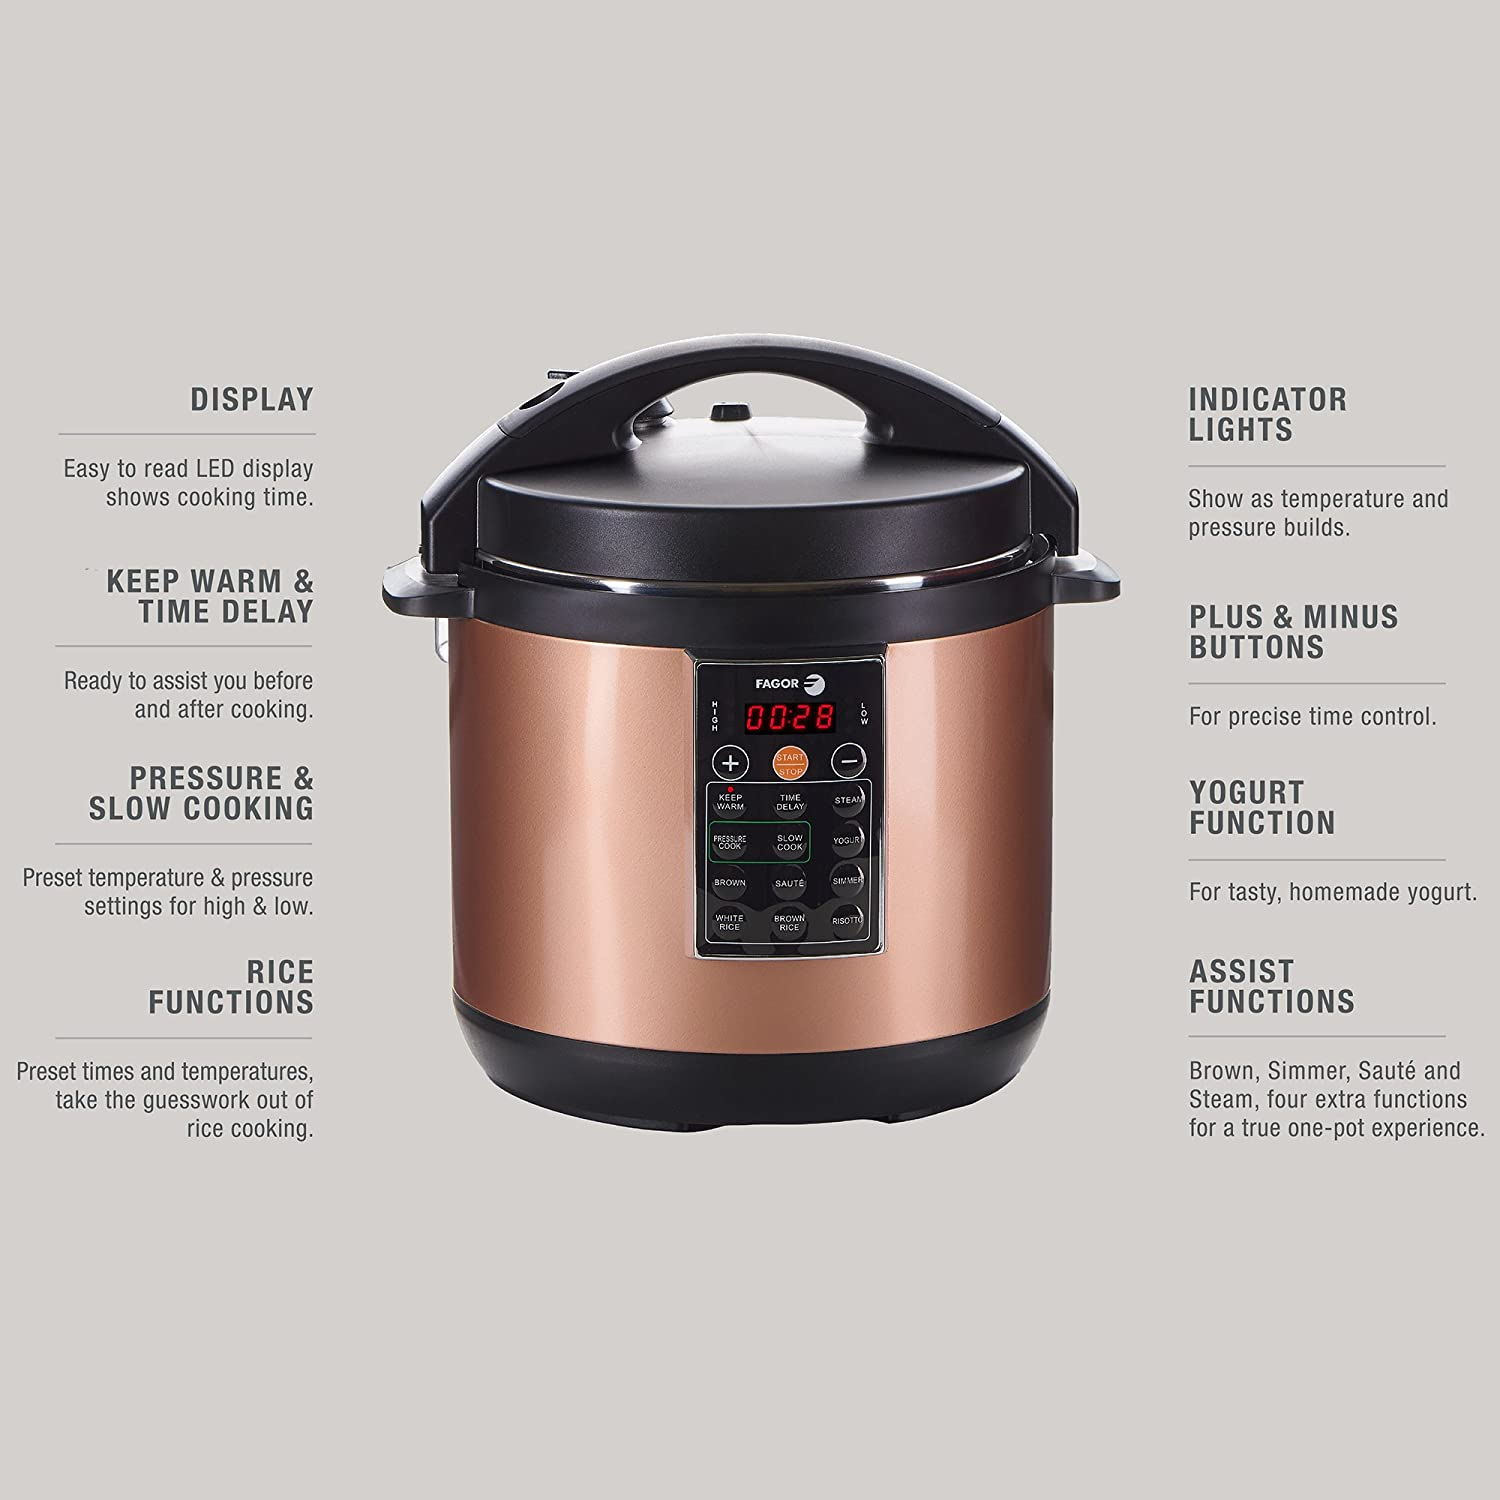 Kitchen small appliance circuit - Amazon Com Fagor Lux Multi Cooker 8 Quart Copper Electric Pressure Cooker Slow Cooker Rice Cooker Yogurt Maker And More 935010053 Kitchen